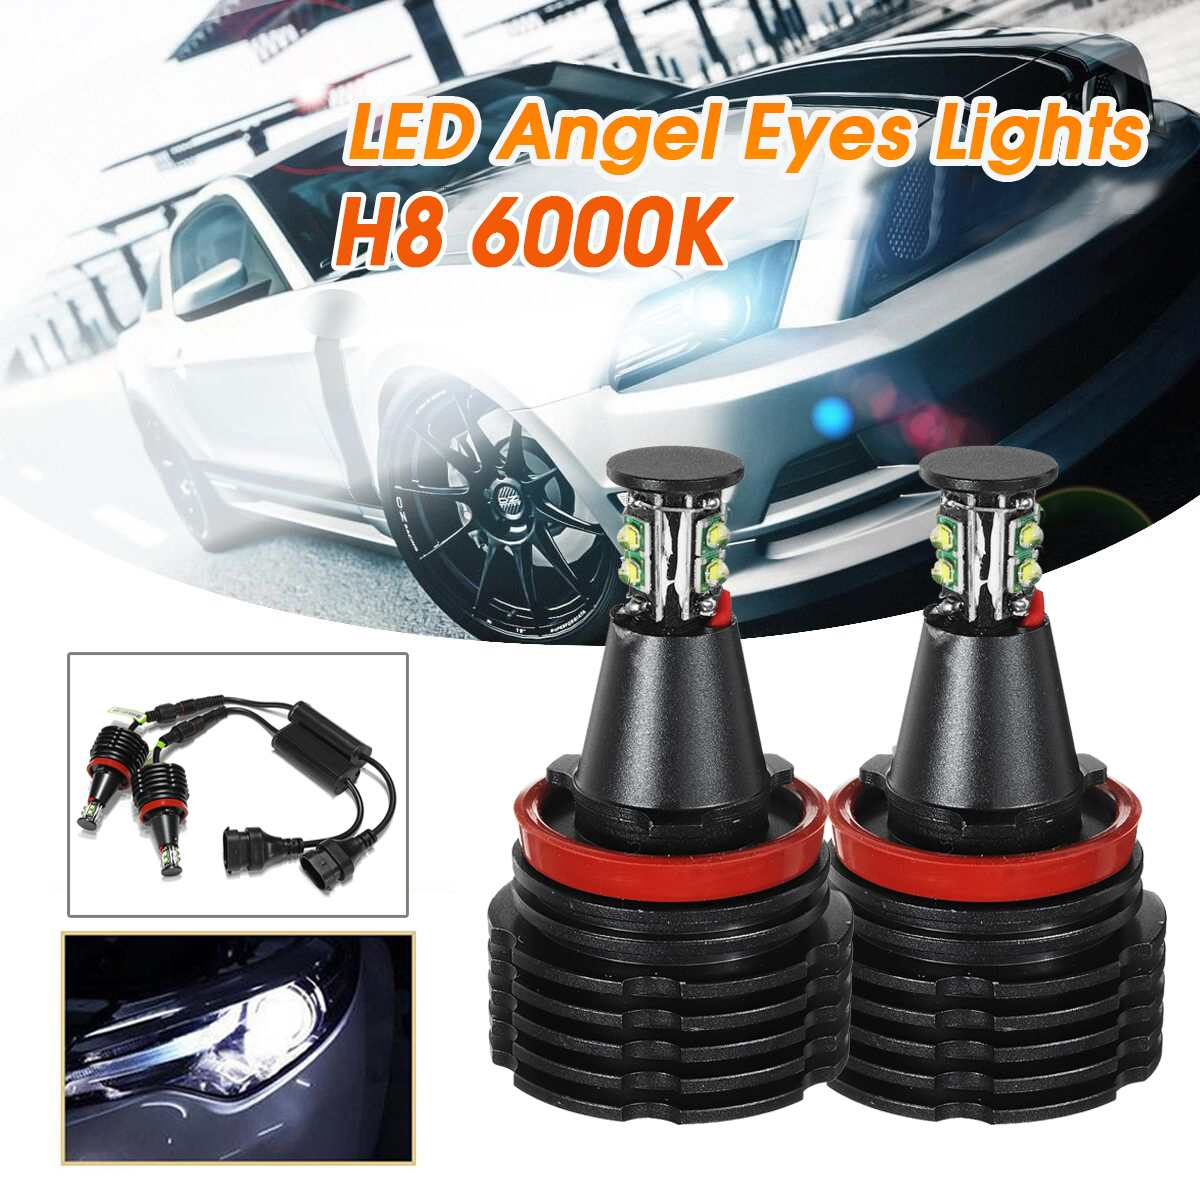 2X 80W H8 LED Angel Eyes Headlights Halo Bright Fog Light Bulbs White For BMW E90 E92 E82 E60 E70 E71 X5 X6 E89